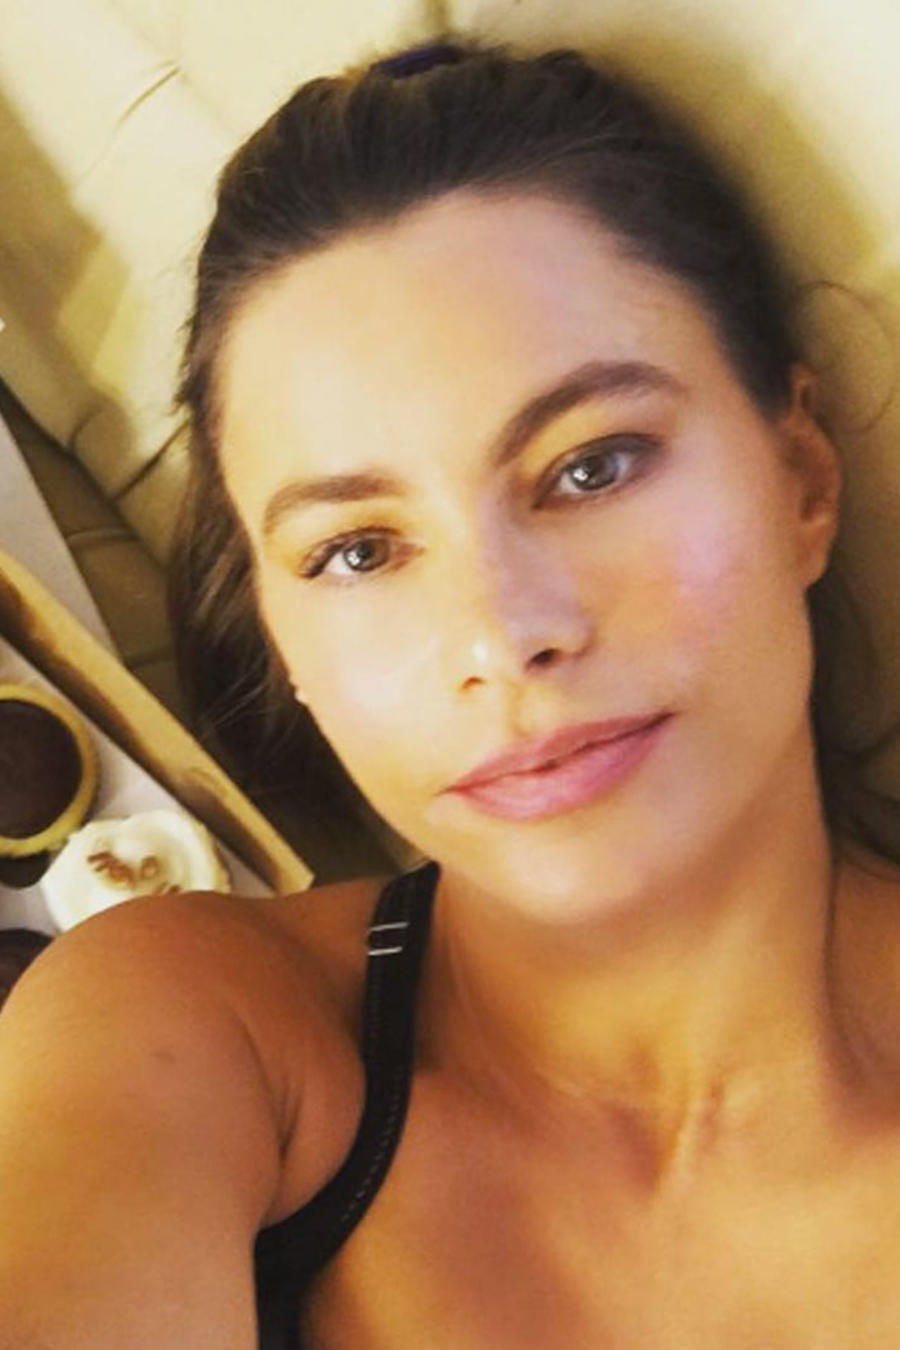 sofia vergara al natural